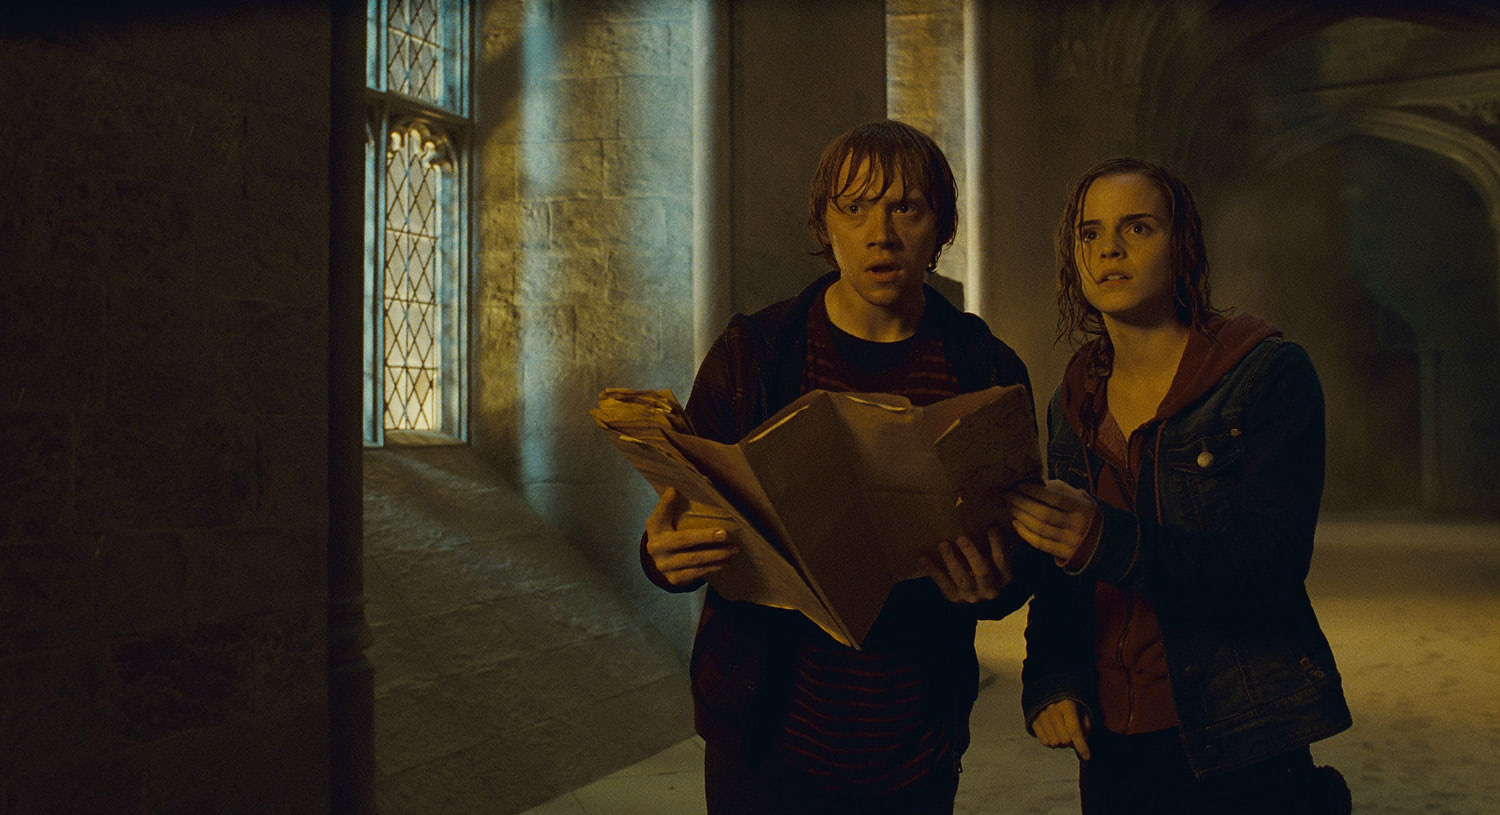 Ron and Hermione with the Marauder's Map